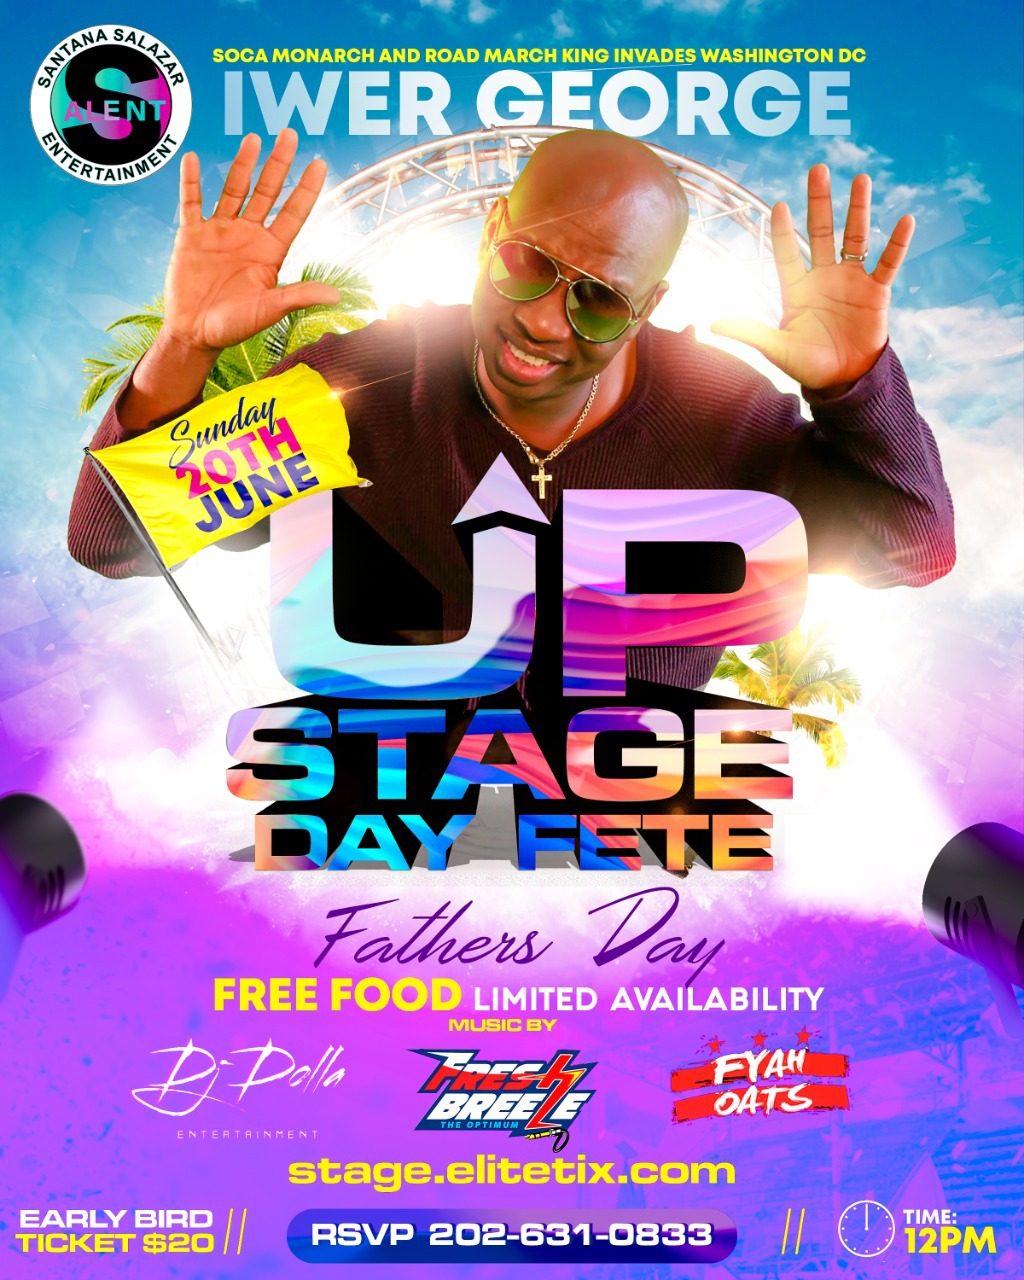 Up Stage Day Fete flyer or graphic.